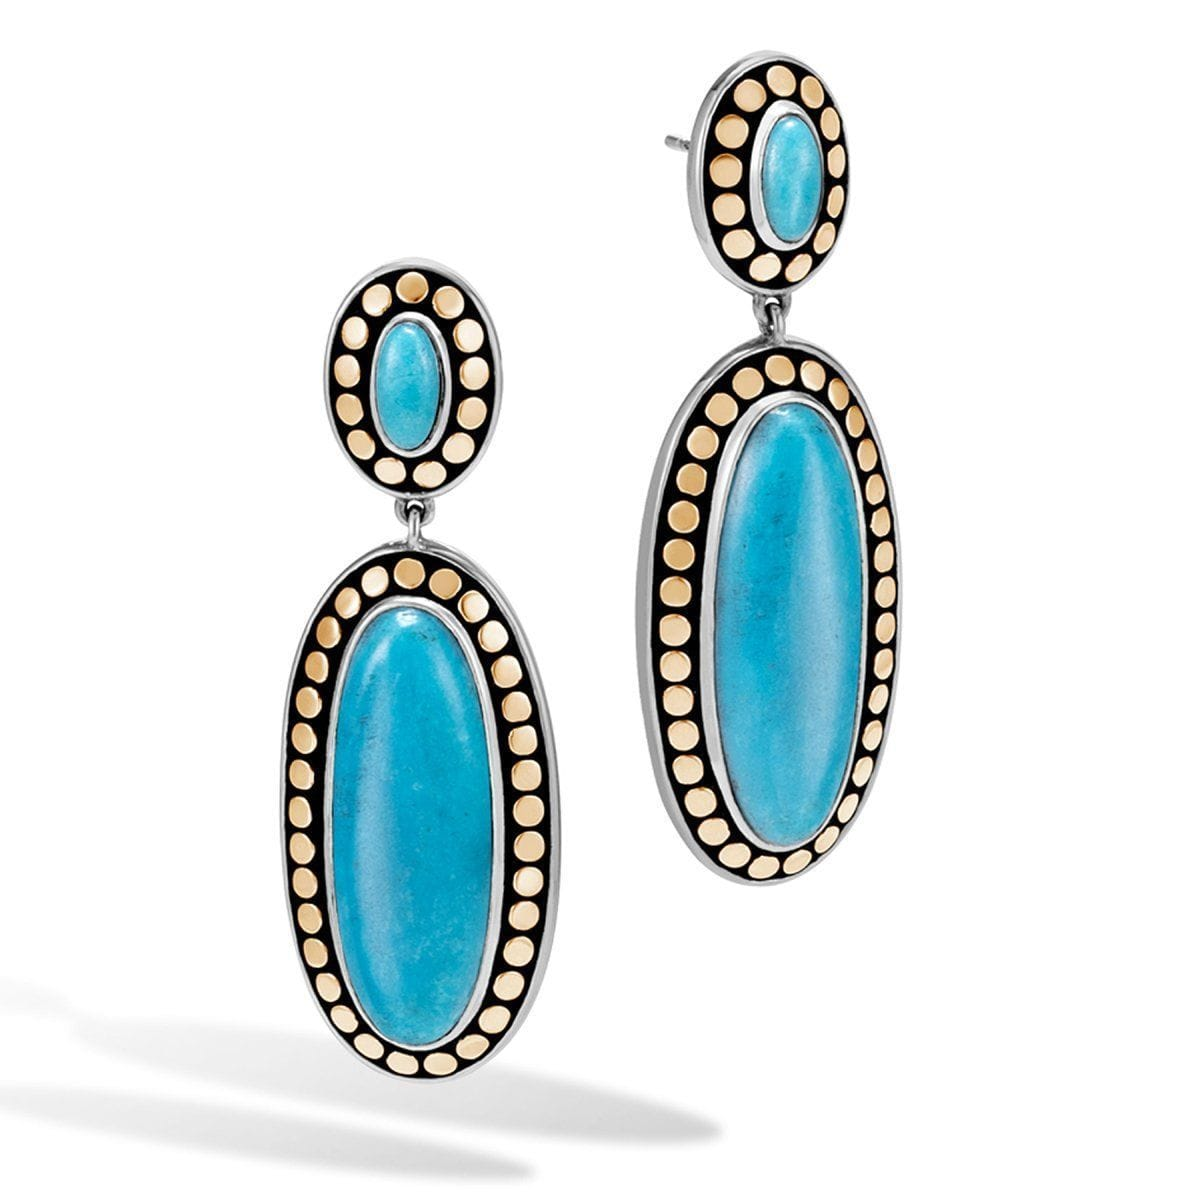 Dot Bonded Gold & Turquoise Drop Earrings - EZS390131TQ